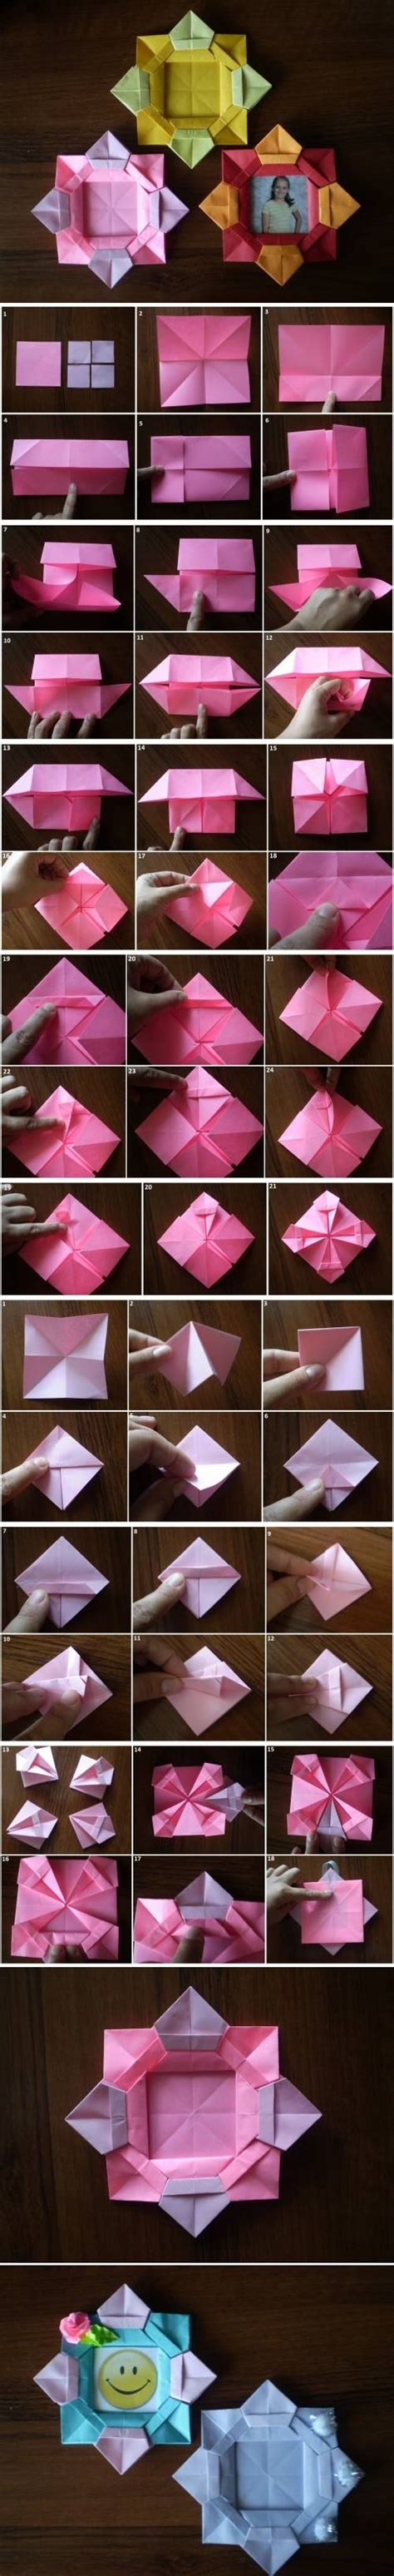 Picture Frame Origami - diy origami flower picture frame pictures photos and